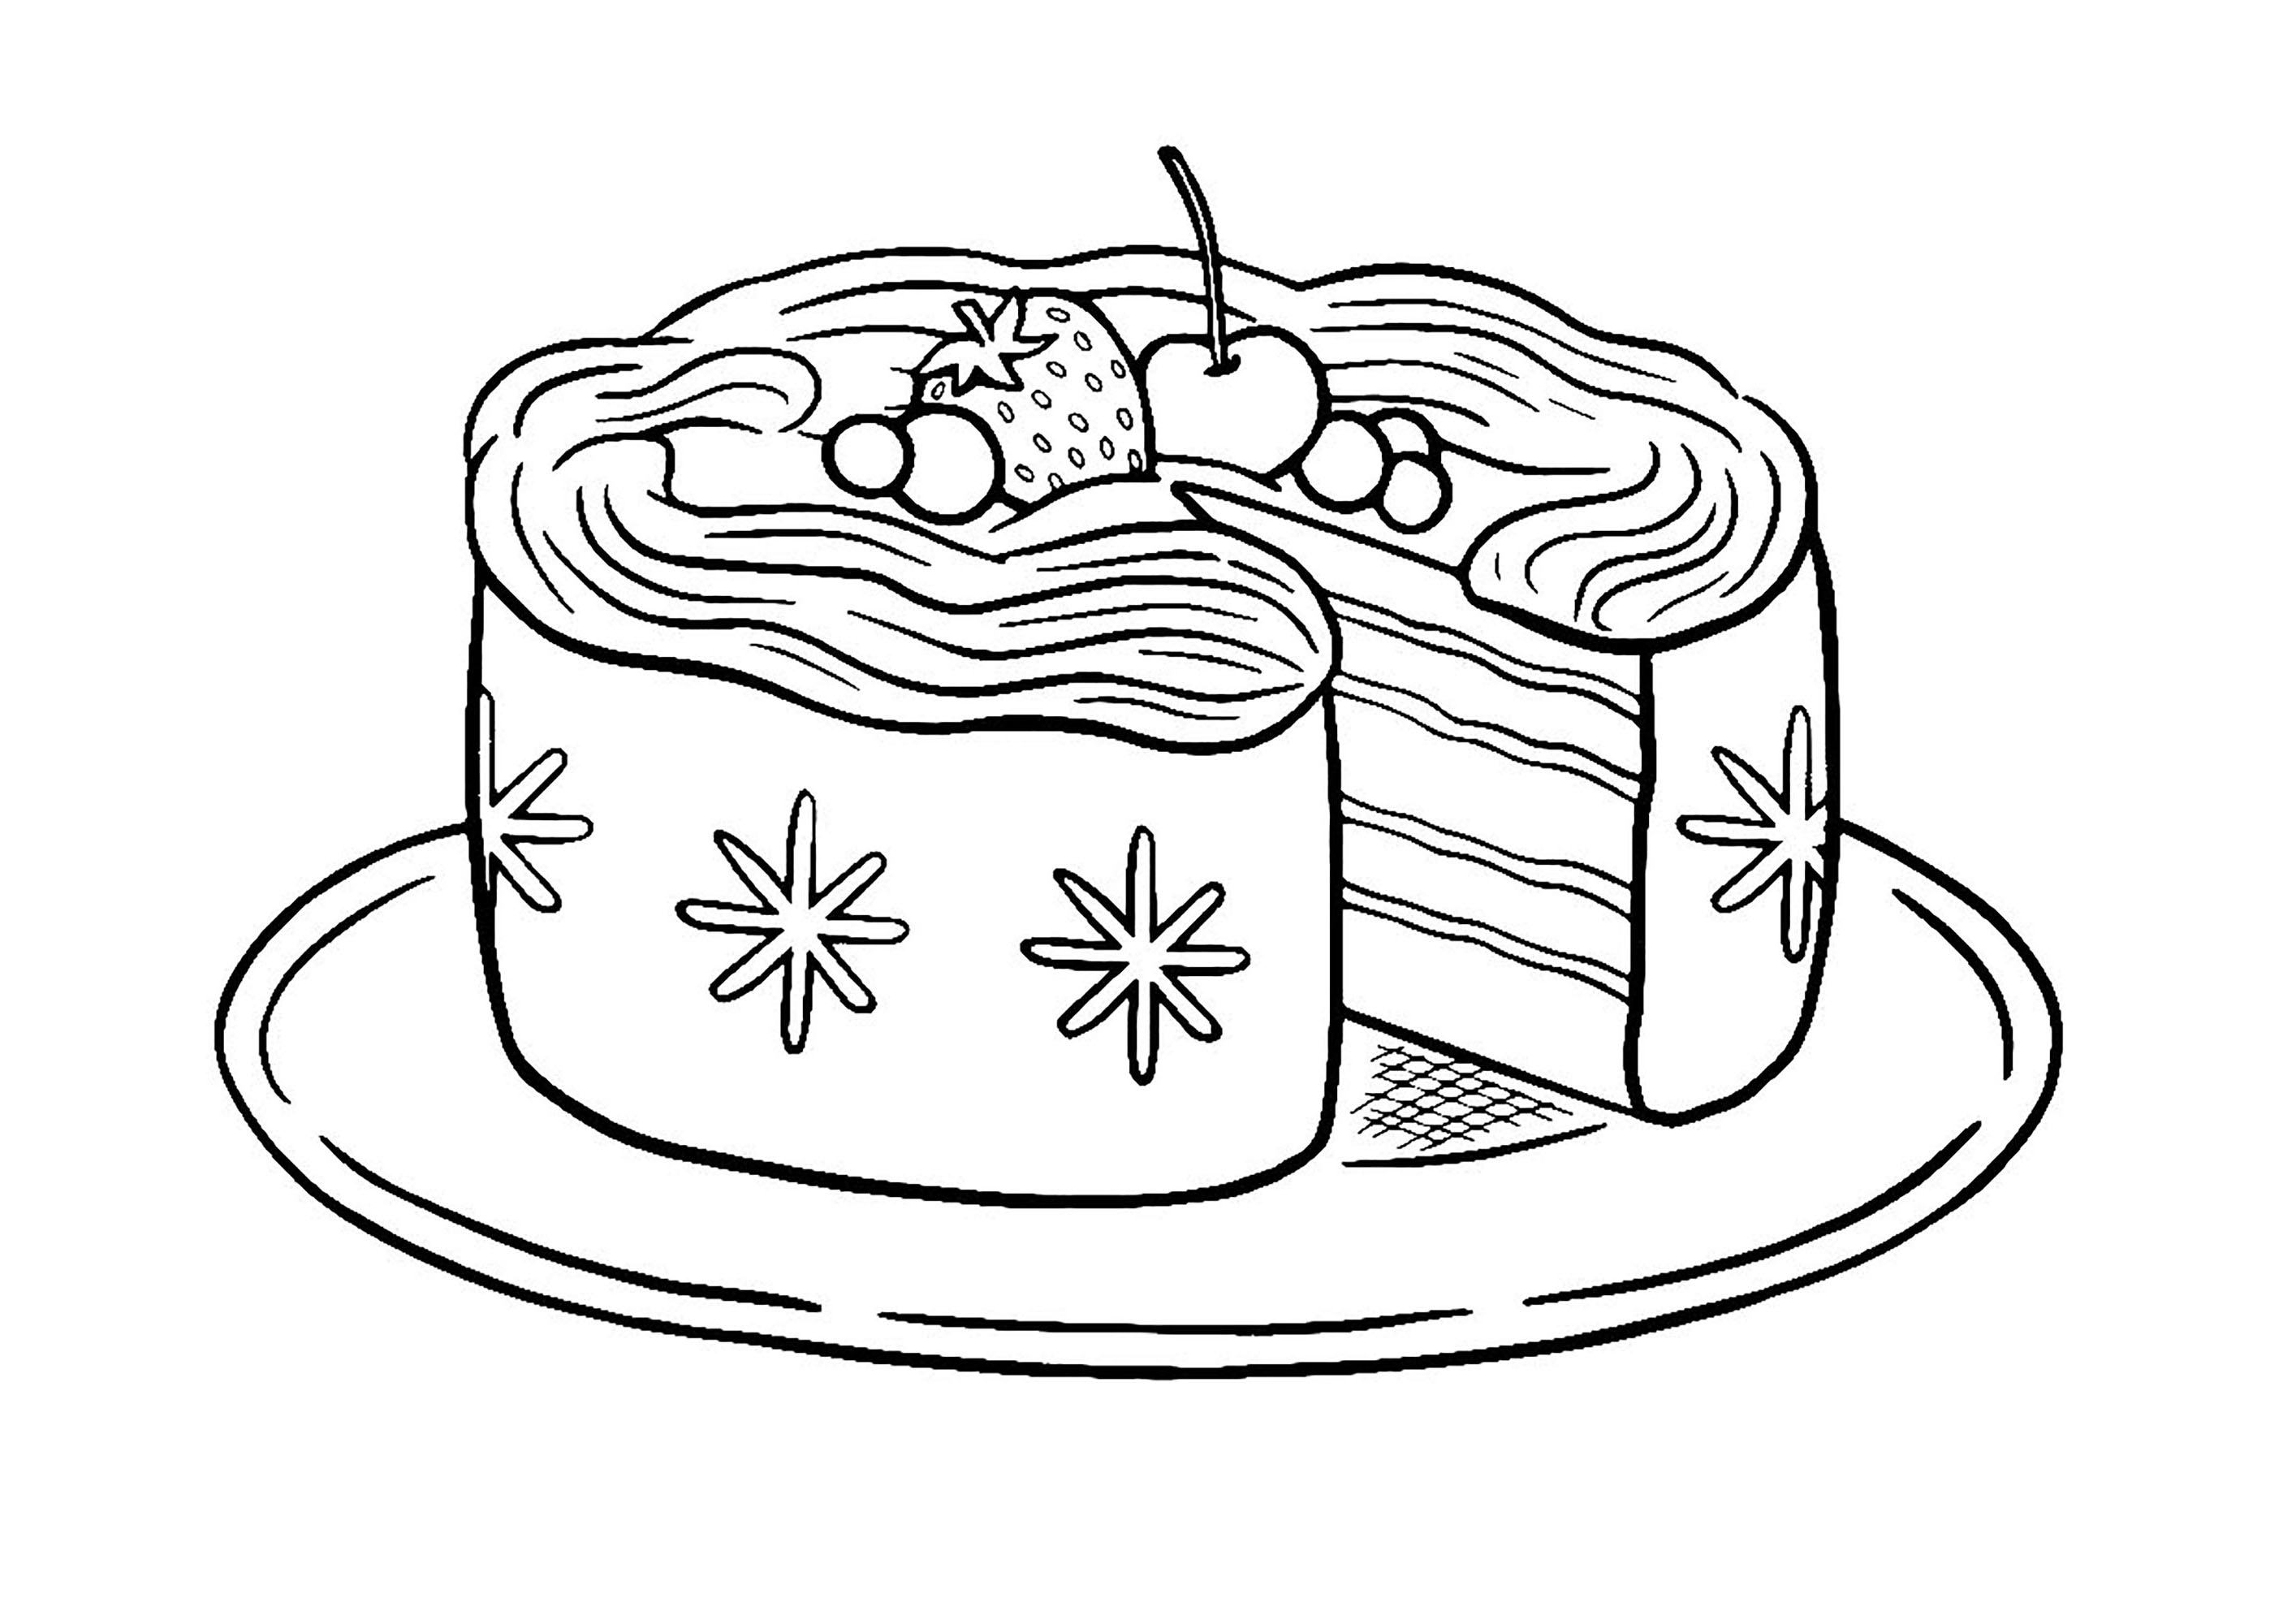 cup cake coloring pictures oodles of doodles news freebie cupcake ten minute card cup pictures cake coloring